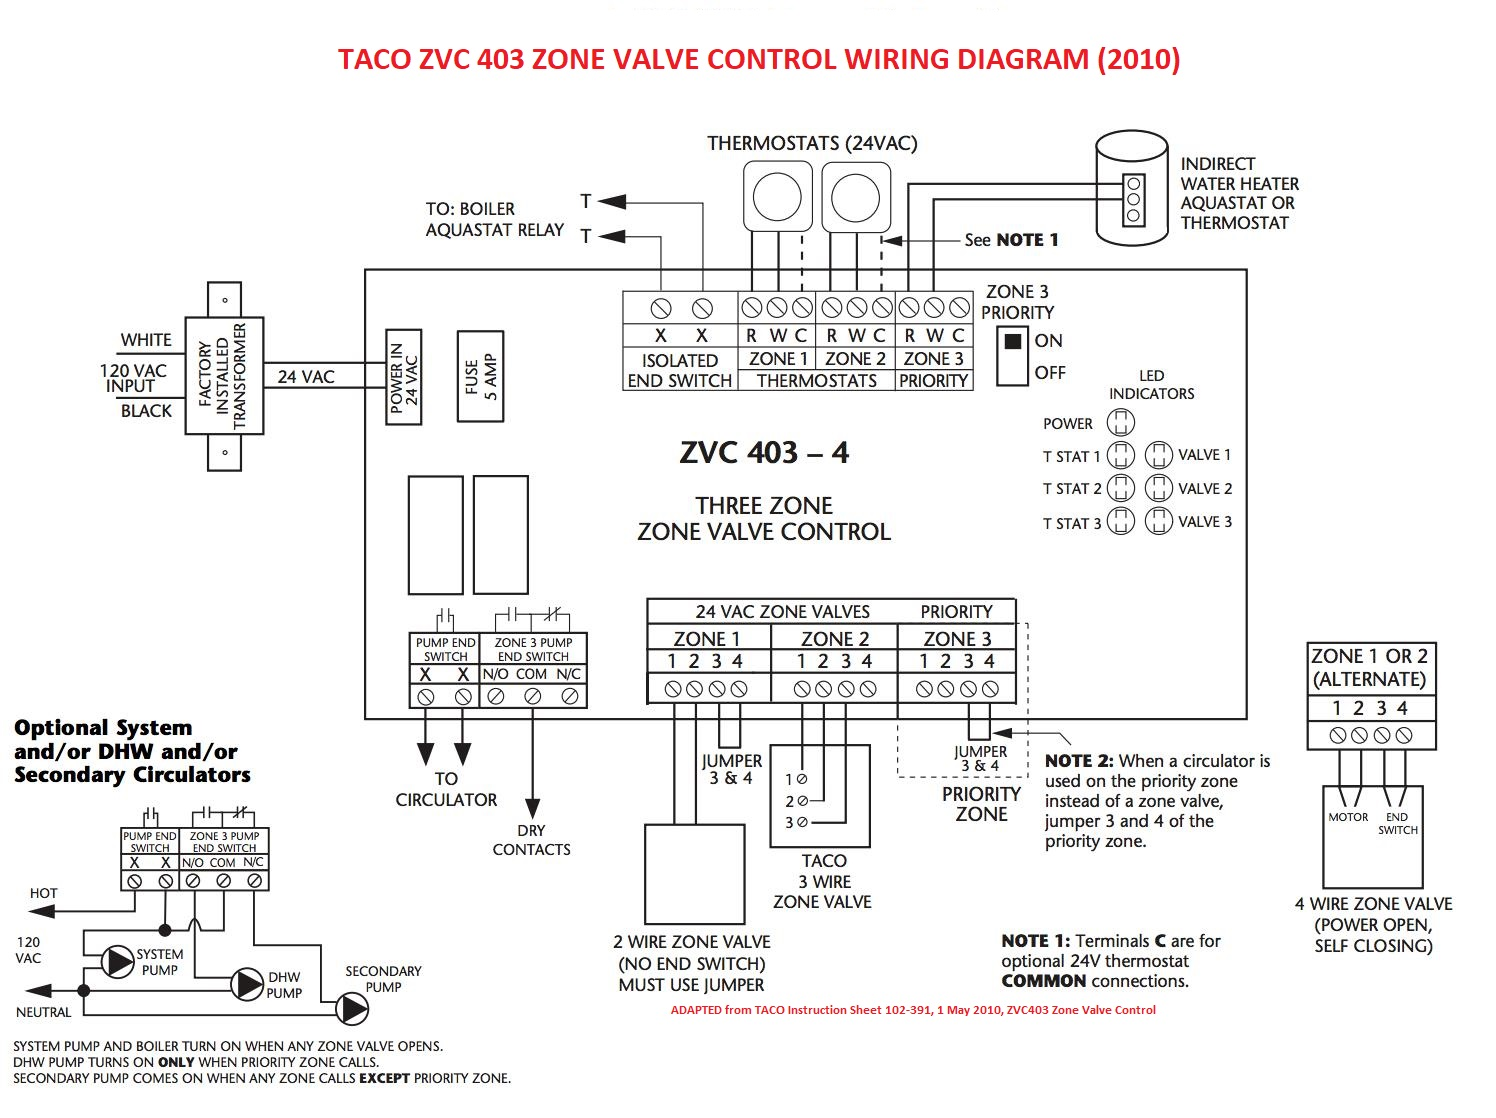 3 zone hvac wiring diagram schematics wiring diagrams u2022 rh seniorlivinguniversity co